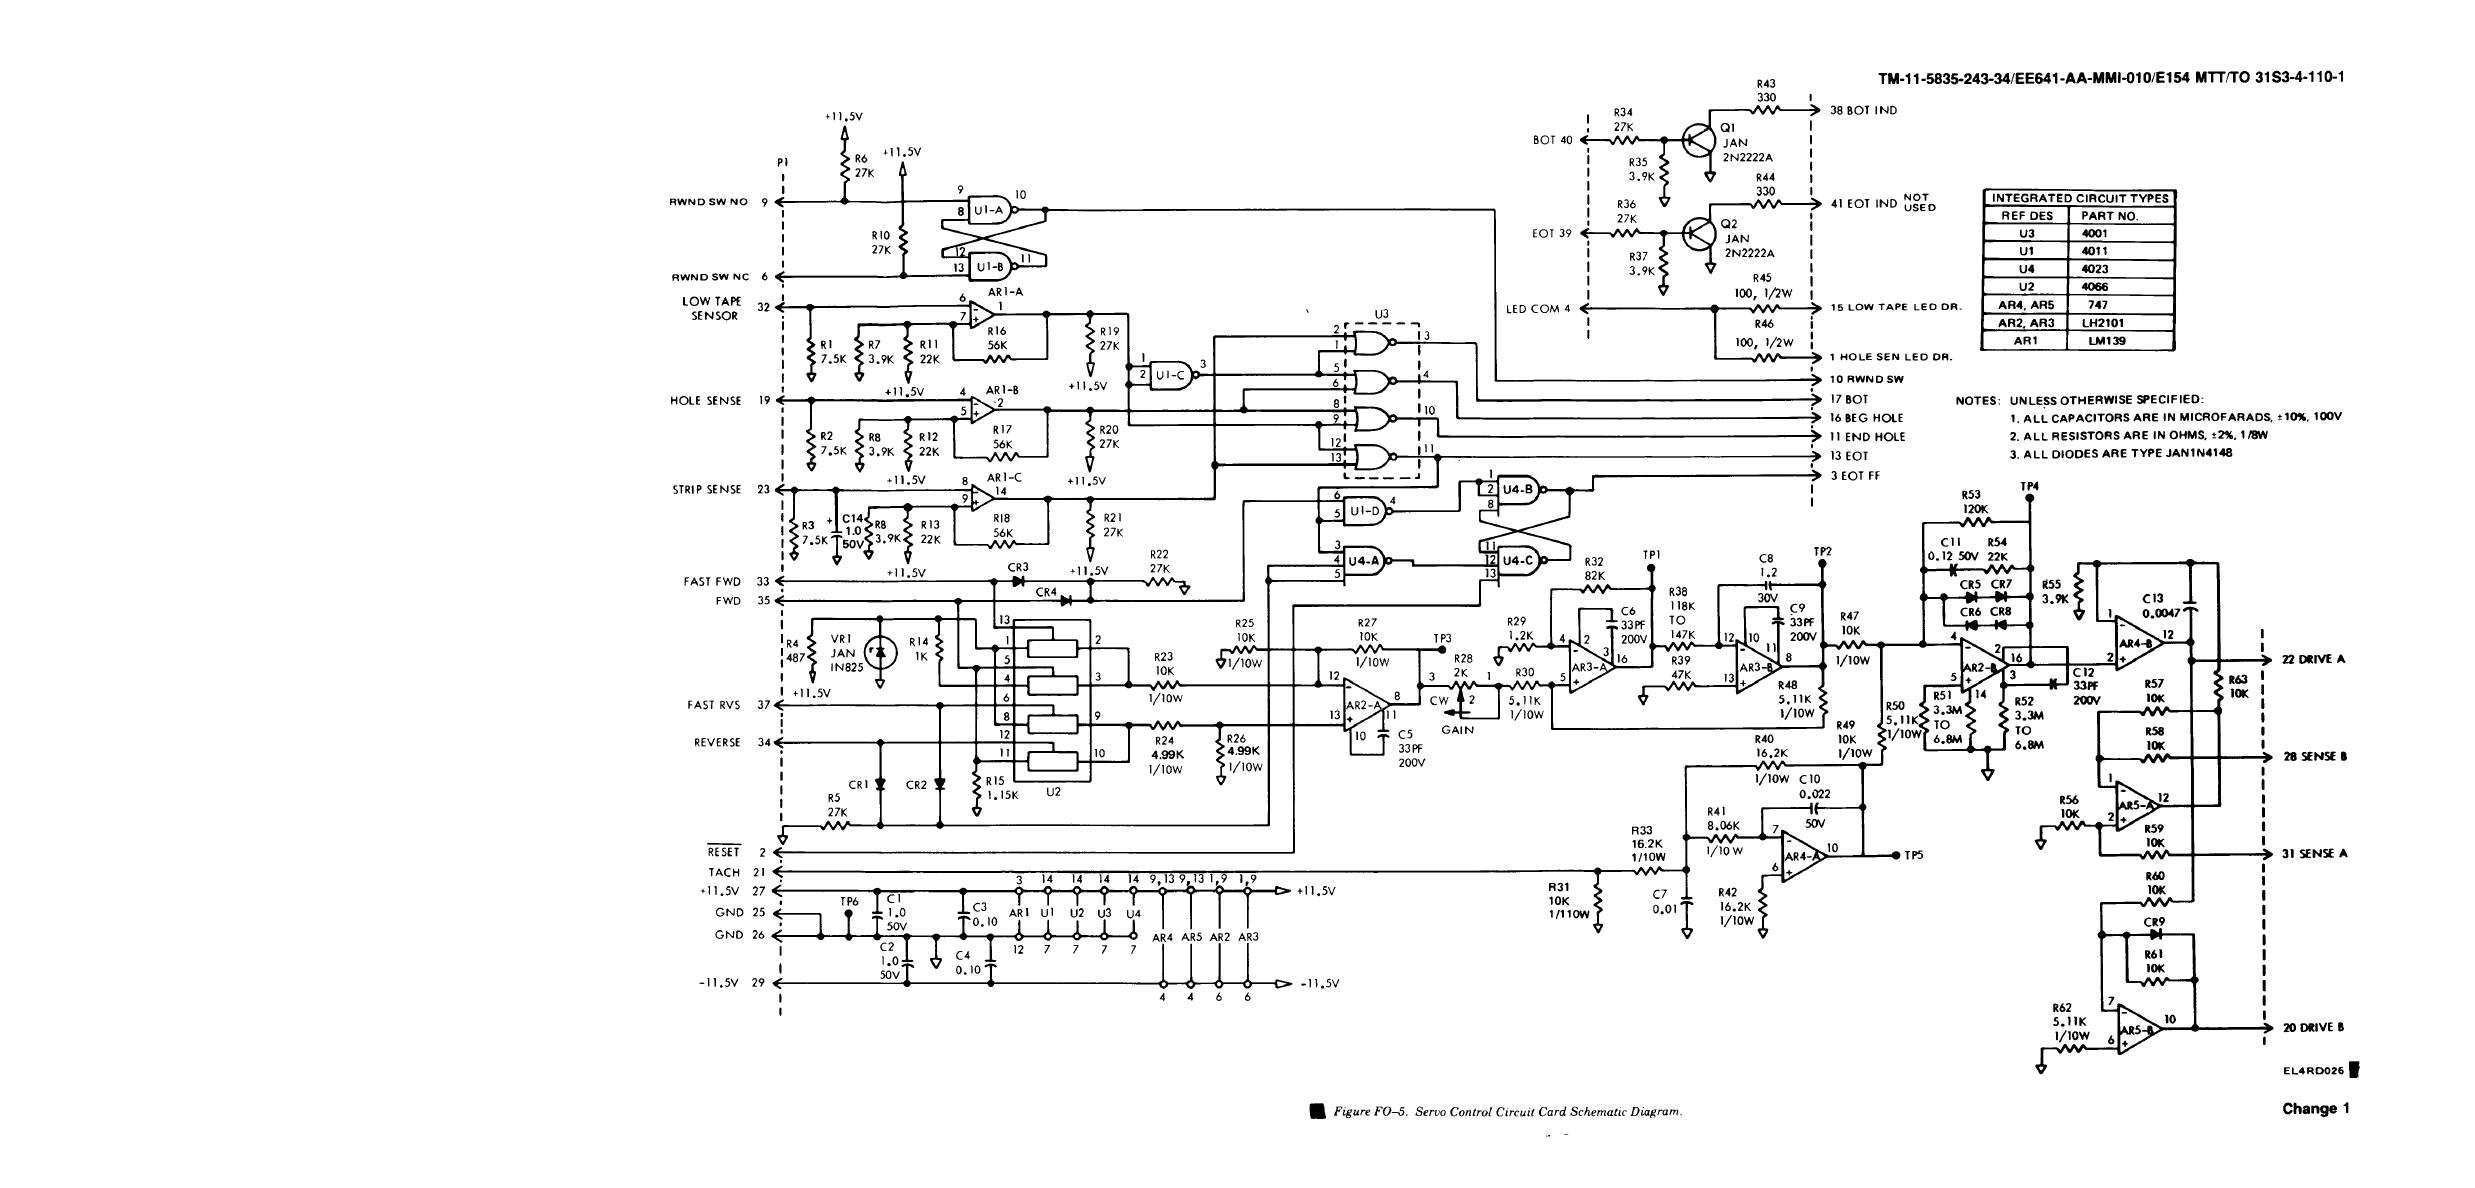 Playstation 4 Block Diagram Wiring Library Sega Genesis Servo Control Circuit Card Schematic